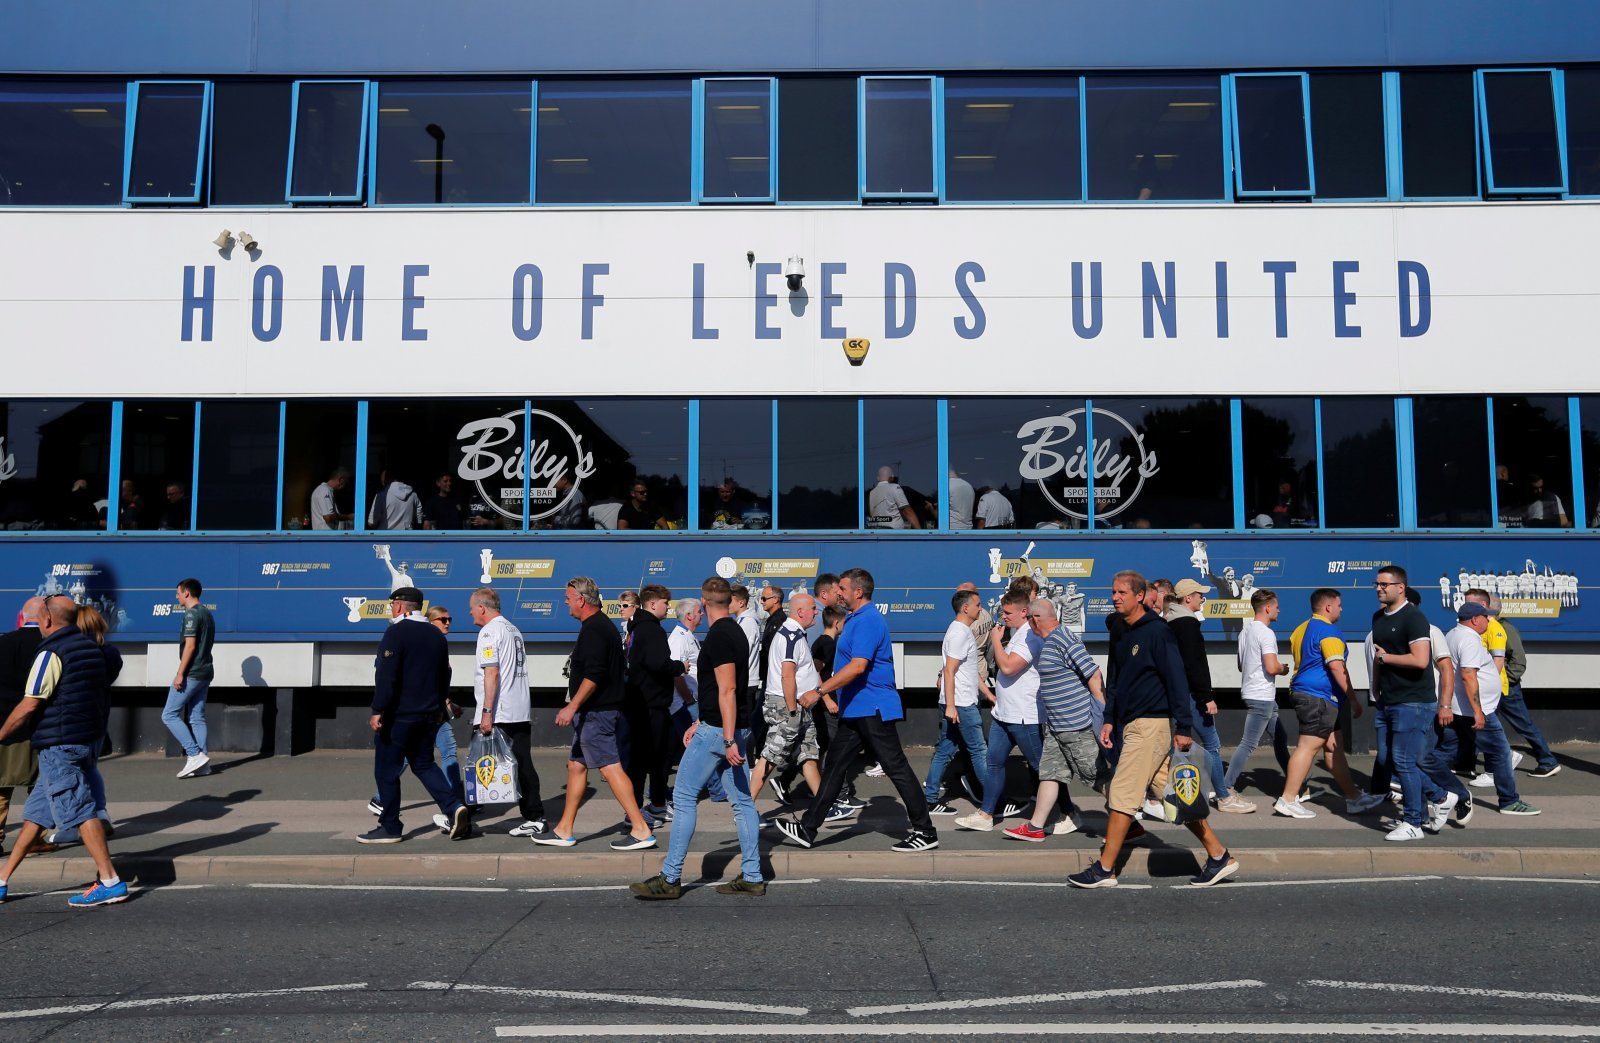 Leeds United: Fans discuss Mowatt throwback